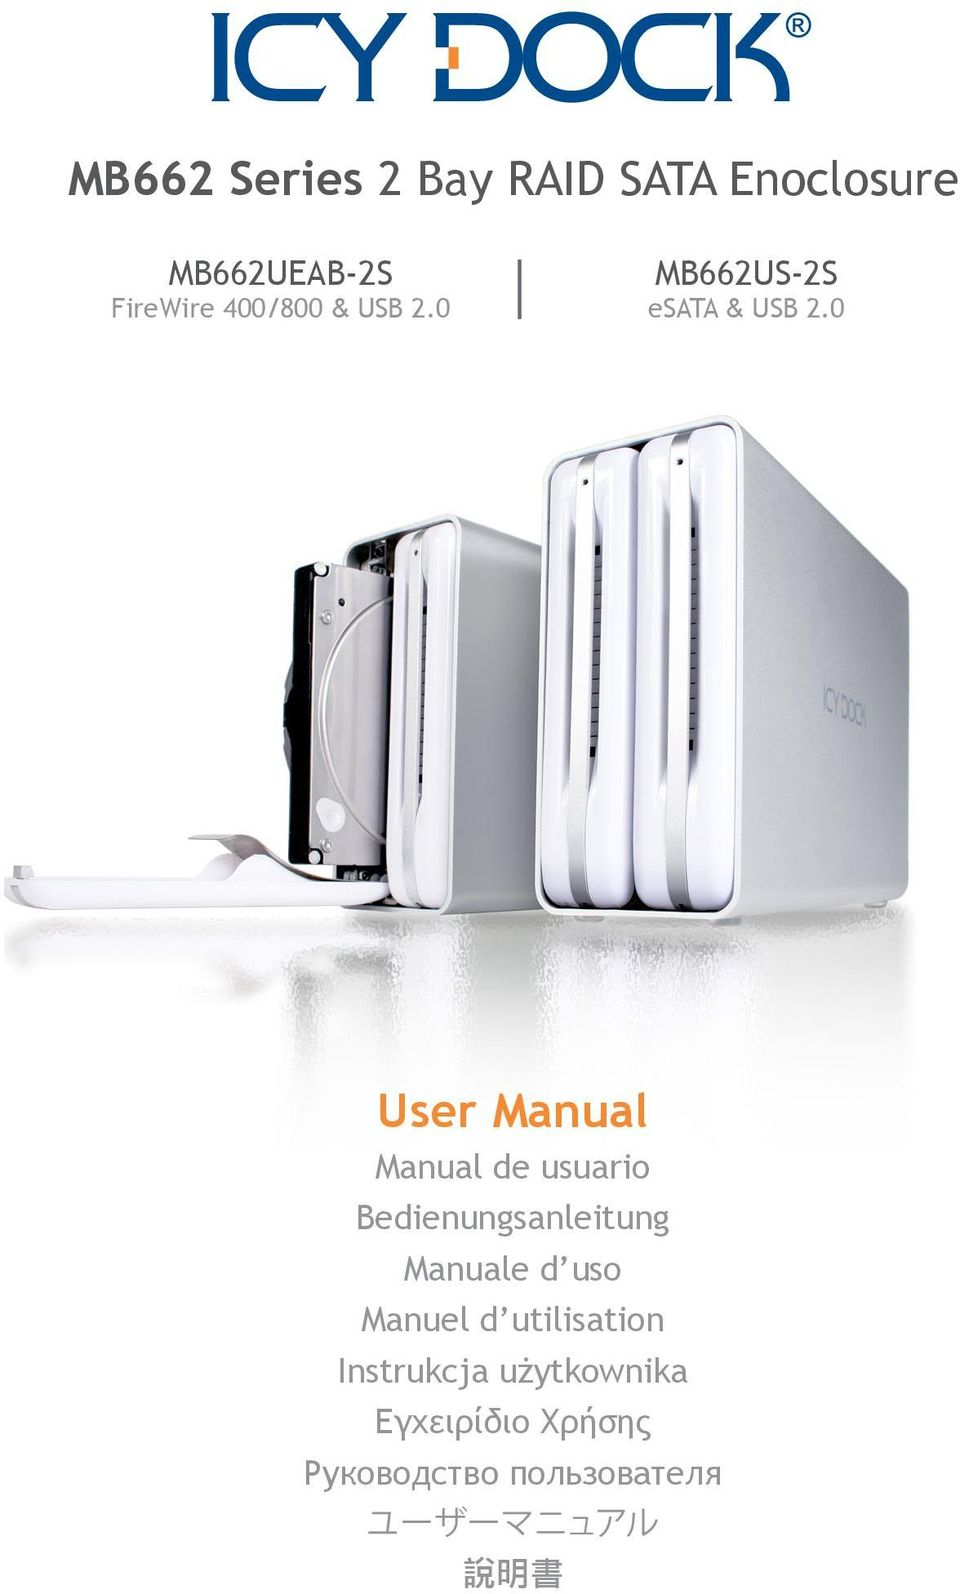 0 User Manual Manual de usuario Bedienungsanleitung Manuale d uso